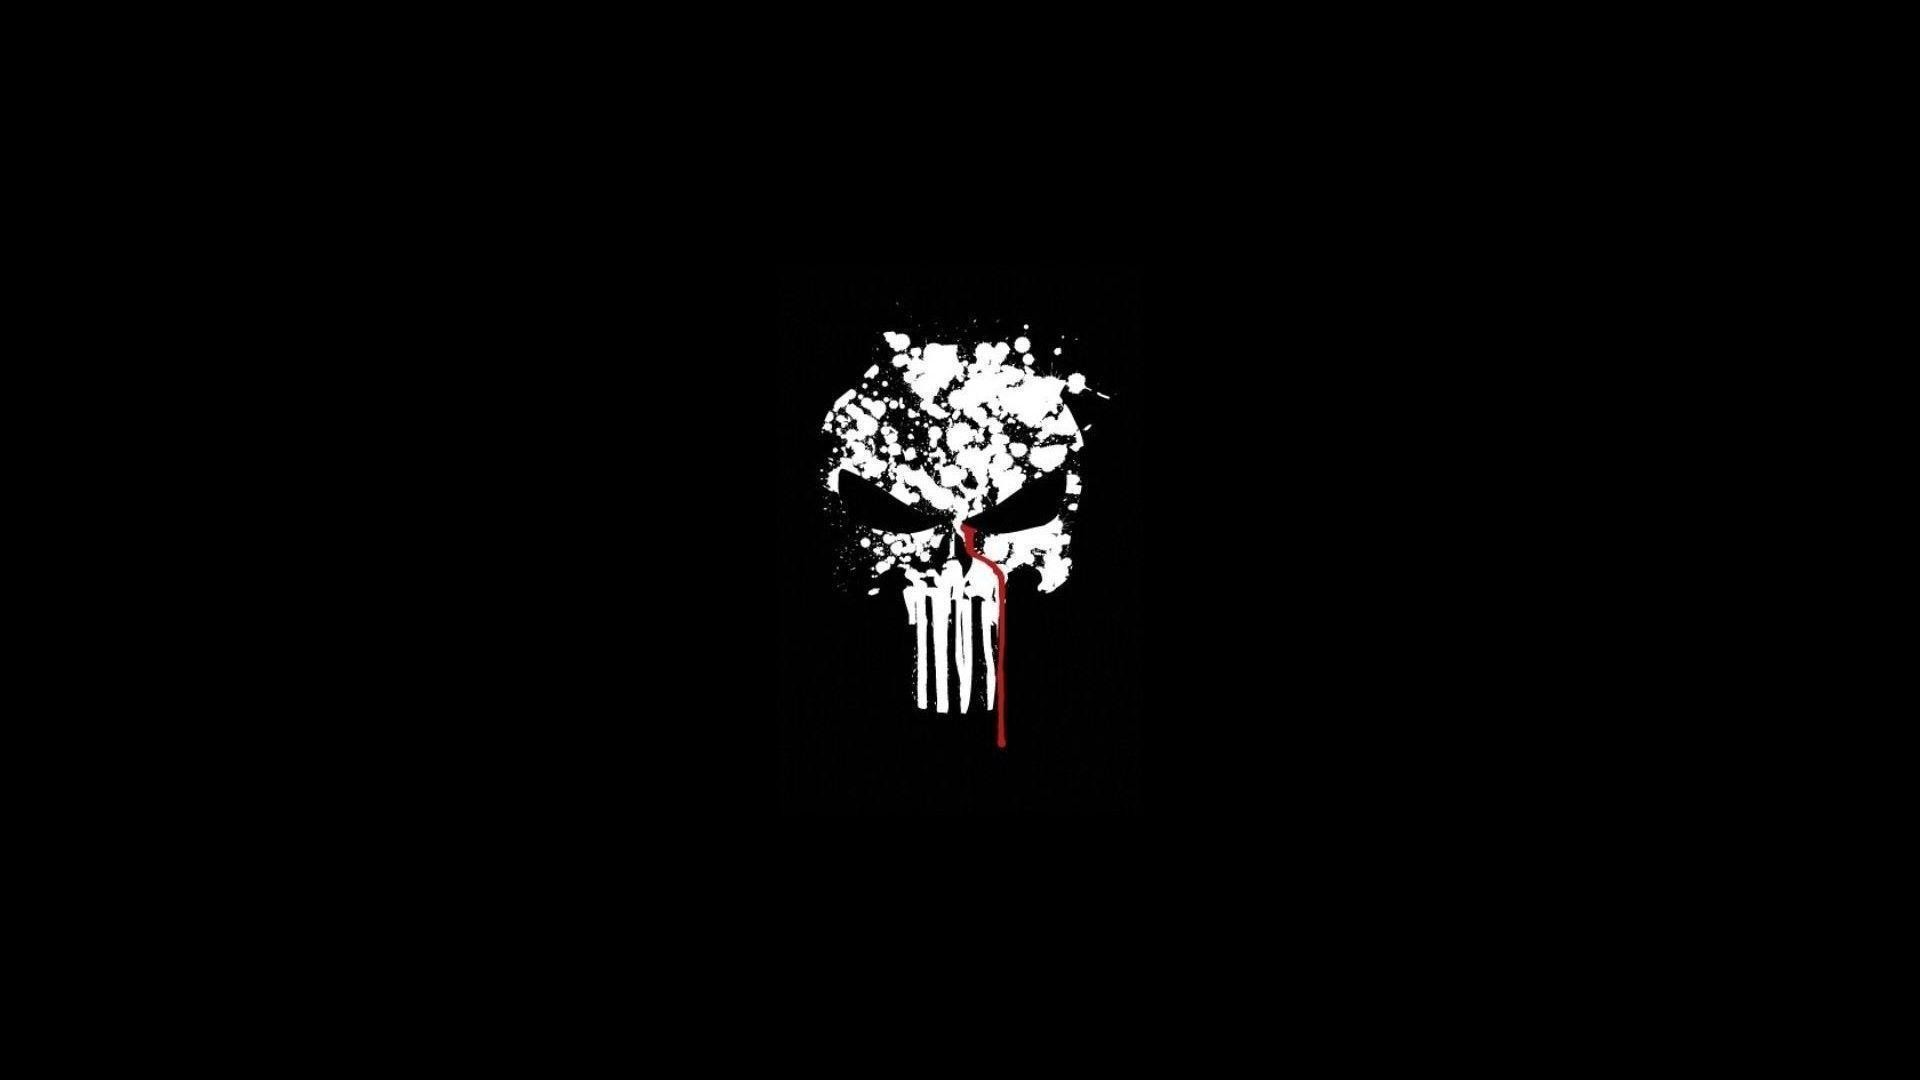 1920x1080 The <b>Punisher HD</b> desktop <b>wallpaper<